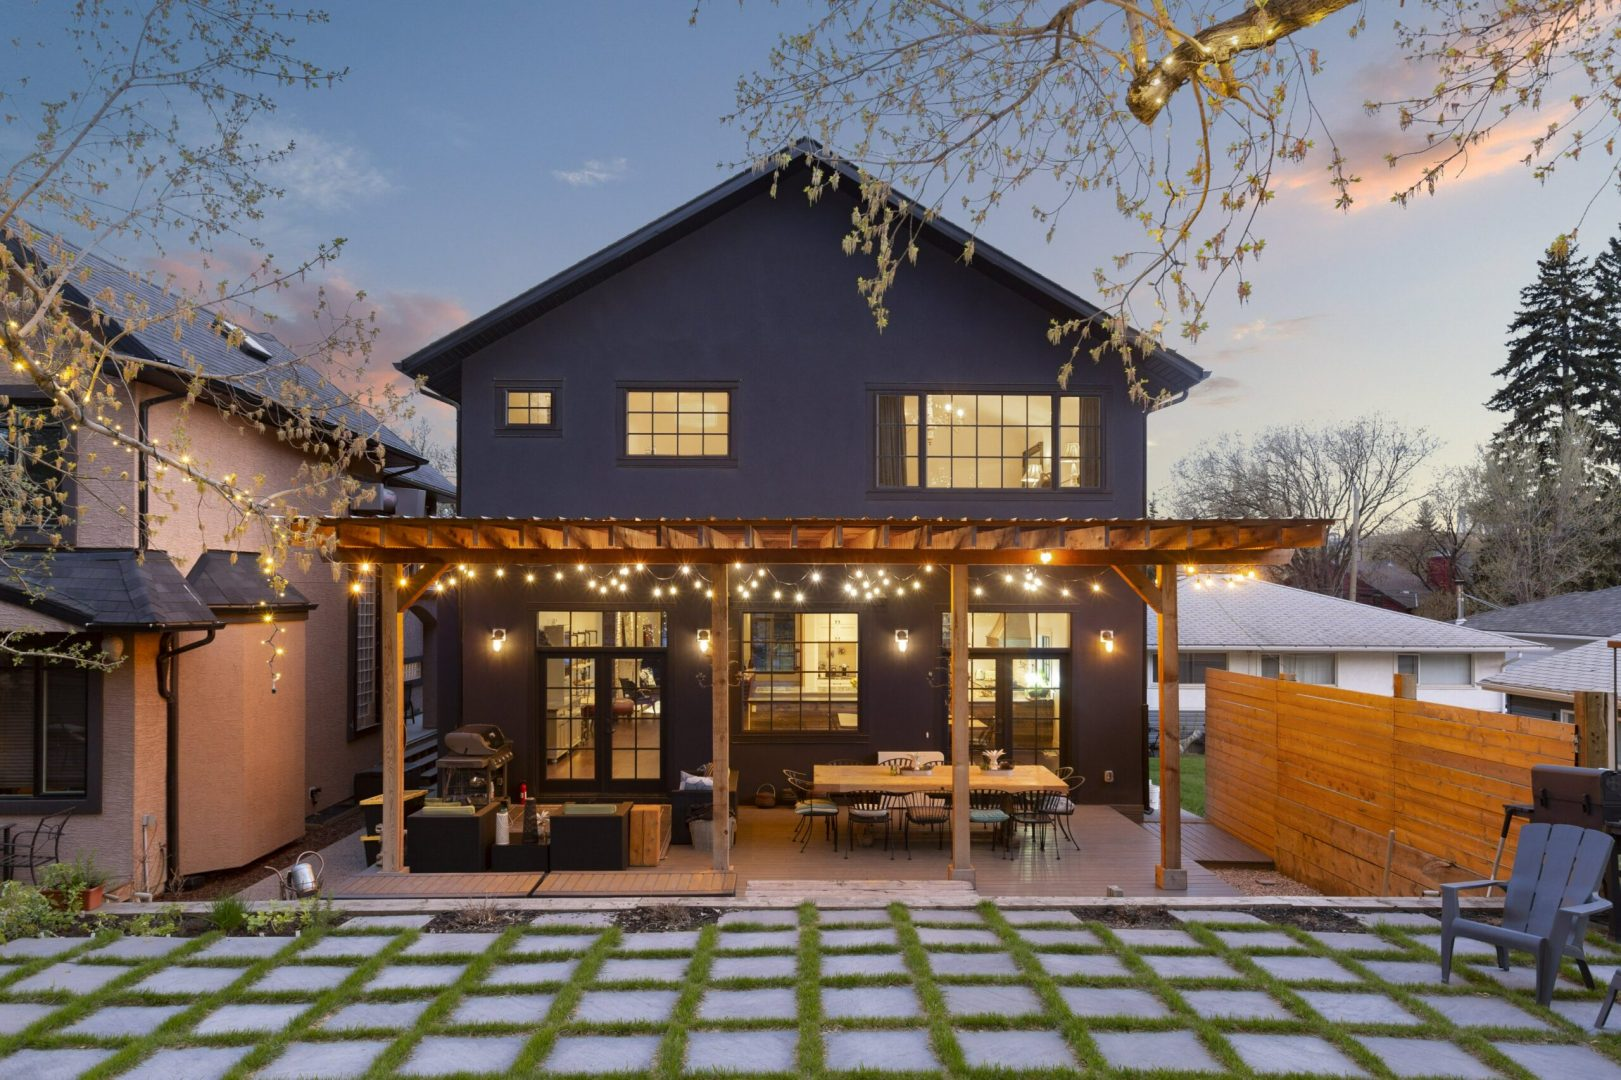 Real Estate Photography. A premium exterior photo of a home backyard photographed by Ryan Haggel from Calgary Premium Real Estate Photography.